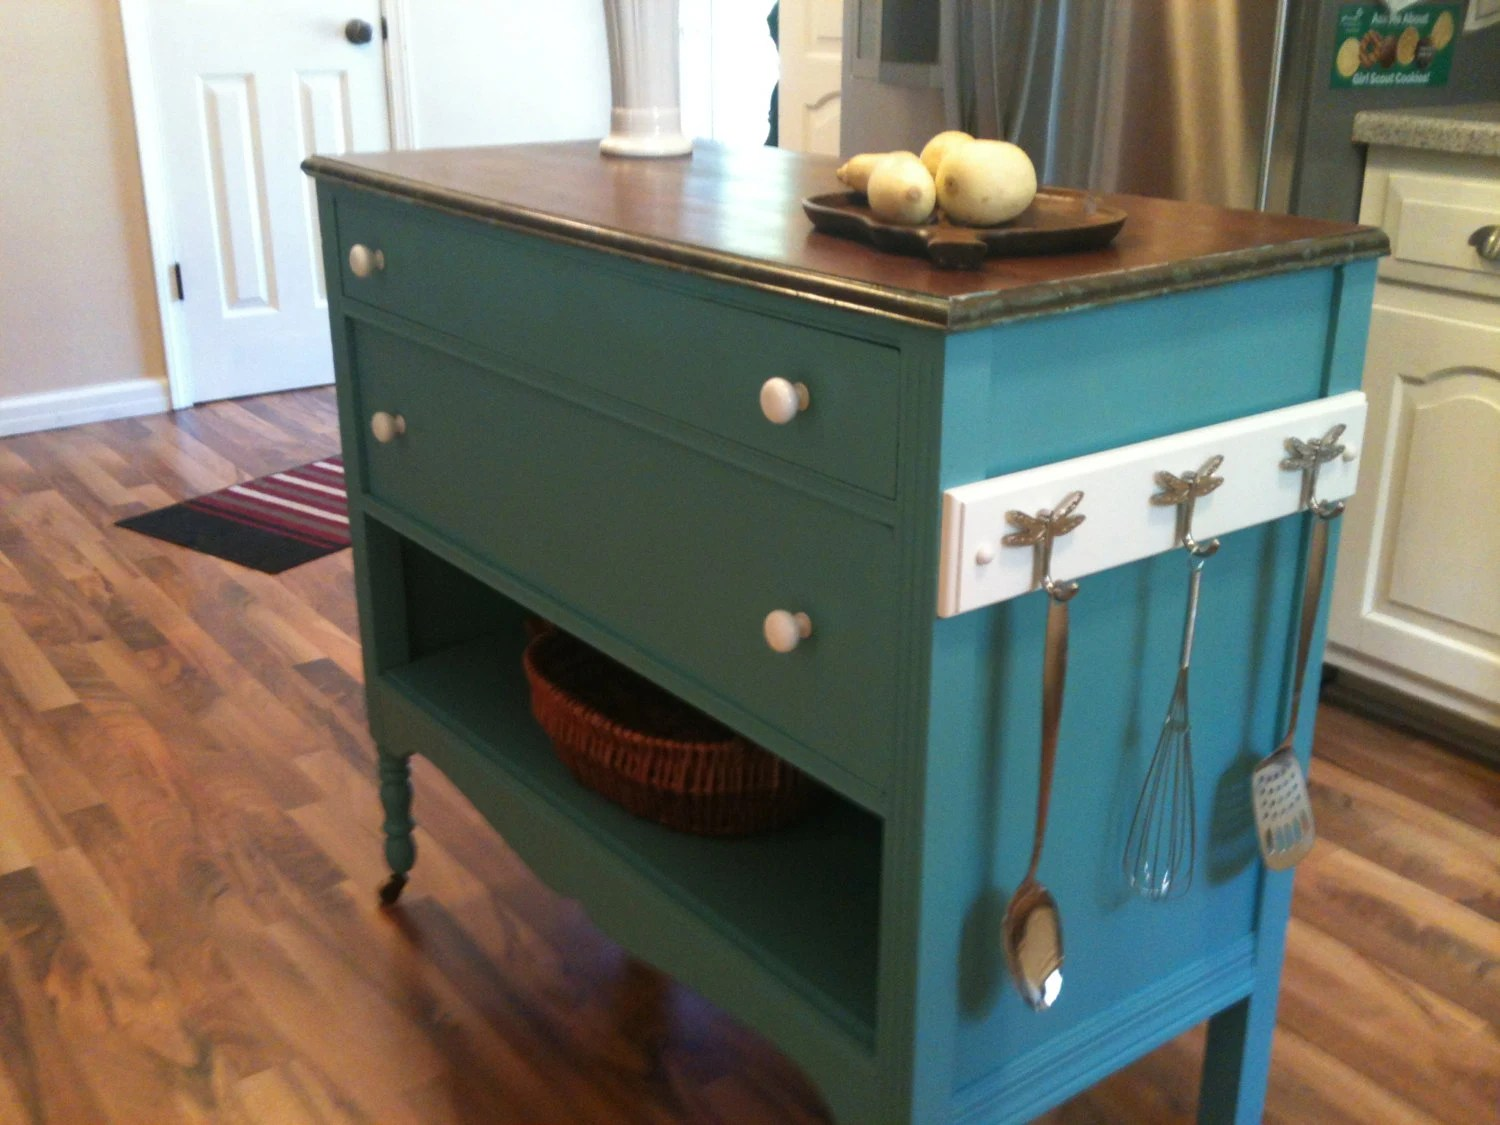 kitchen island made out of dresser mobile food for sale repurposed upcycled into charming turquoise aqua